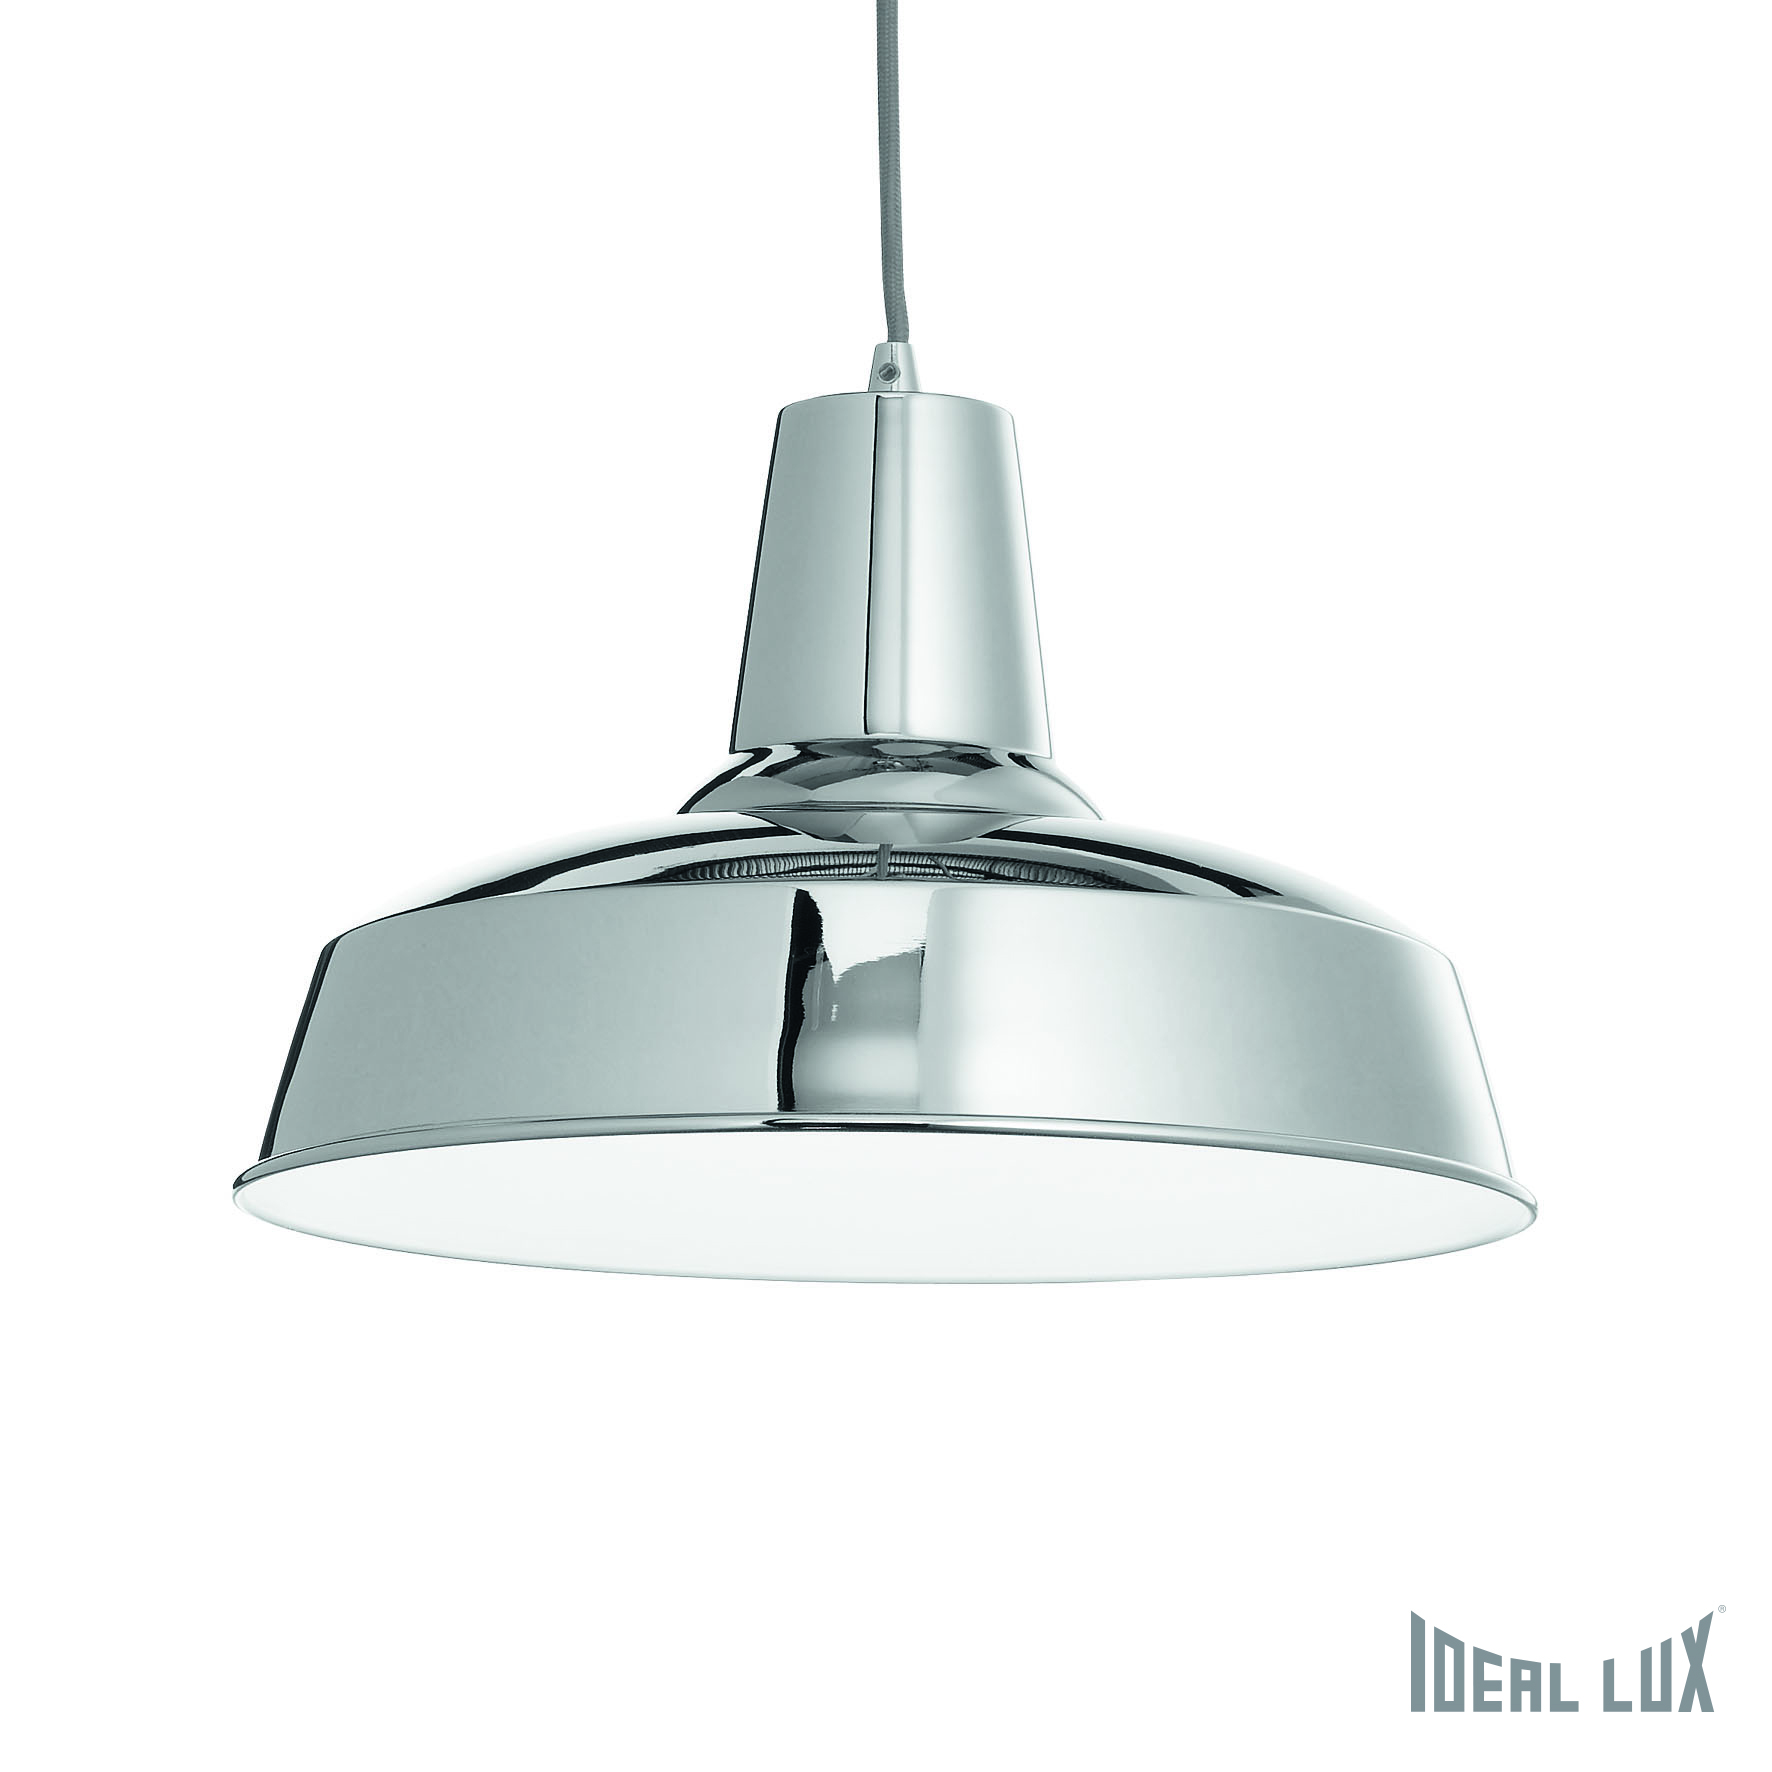 Светильник подвесной Ideal Lux Moby MOBY SP1 CROMO спот citilux сфера cl532522